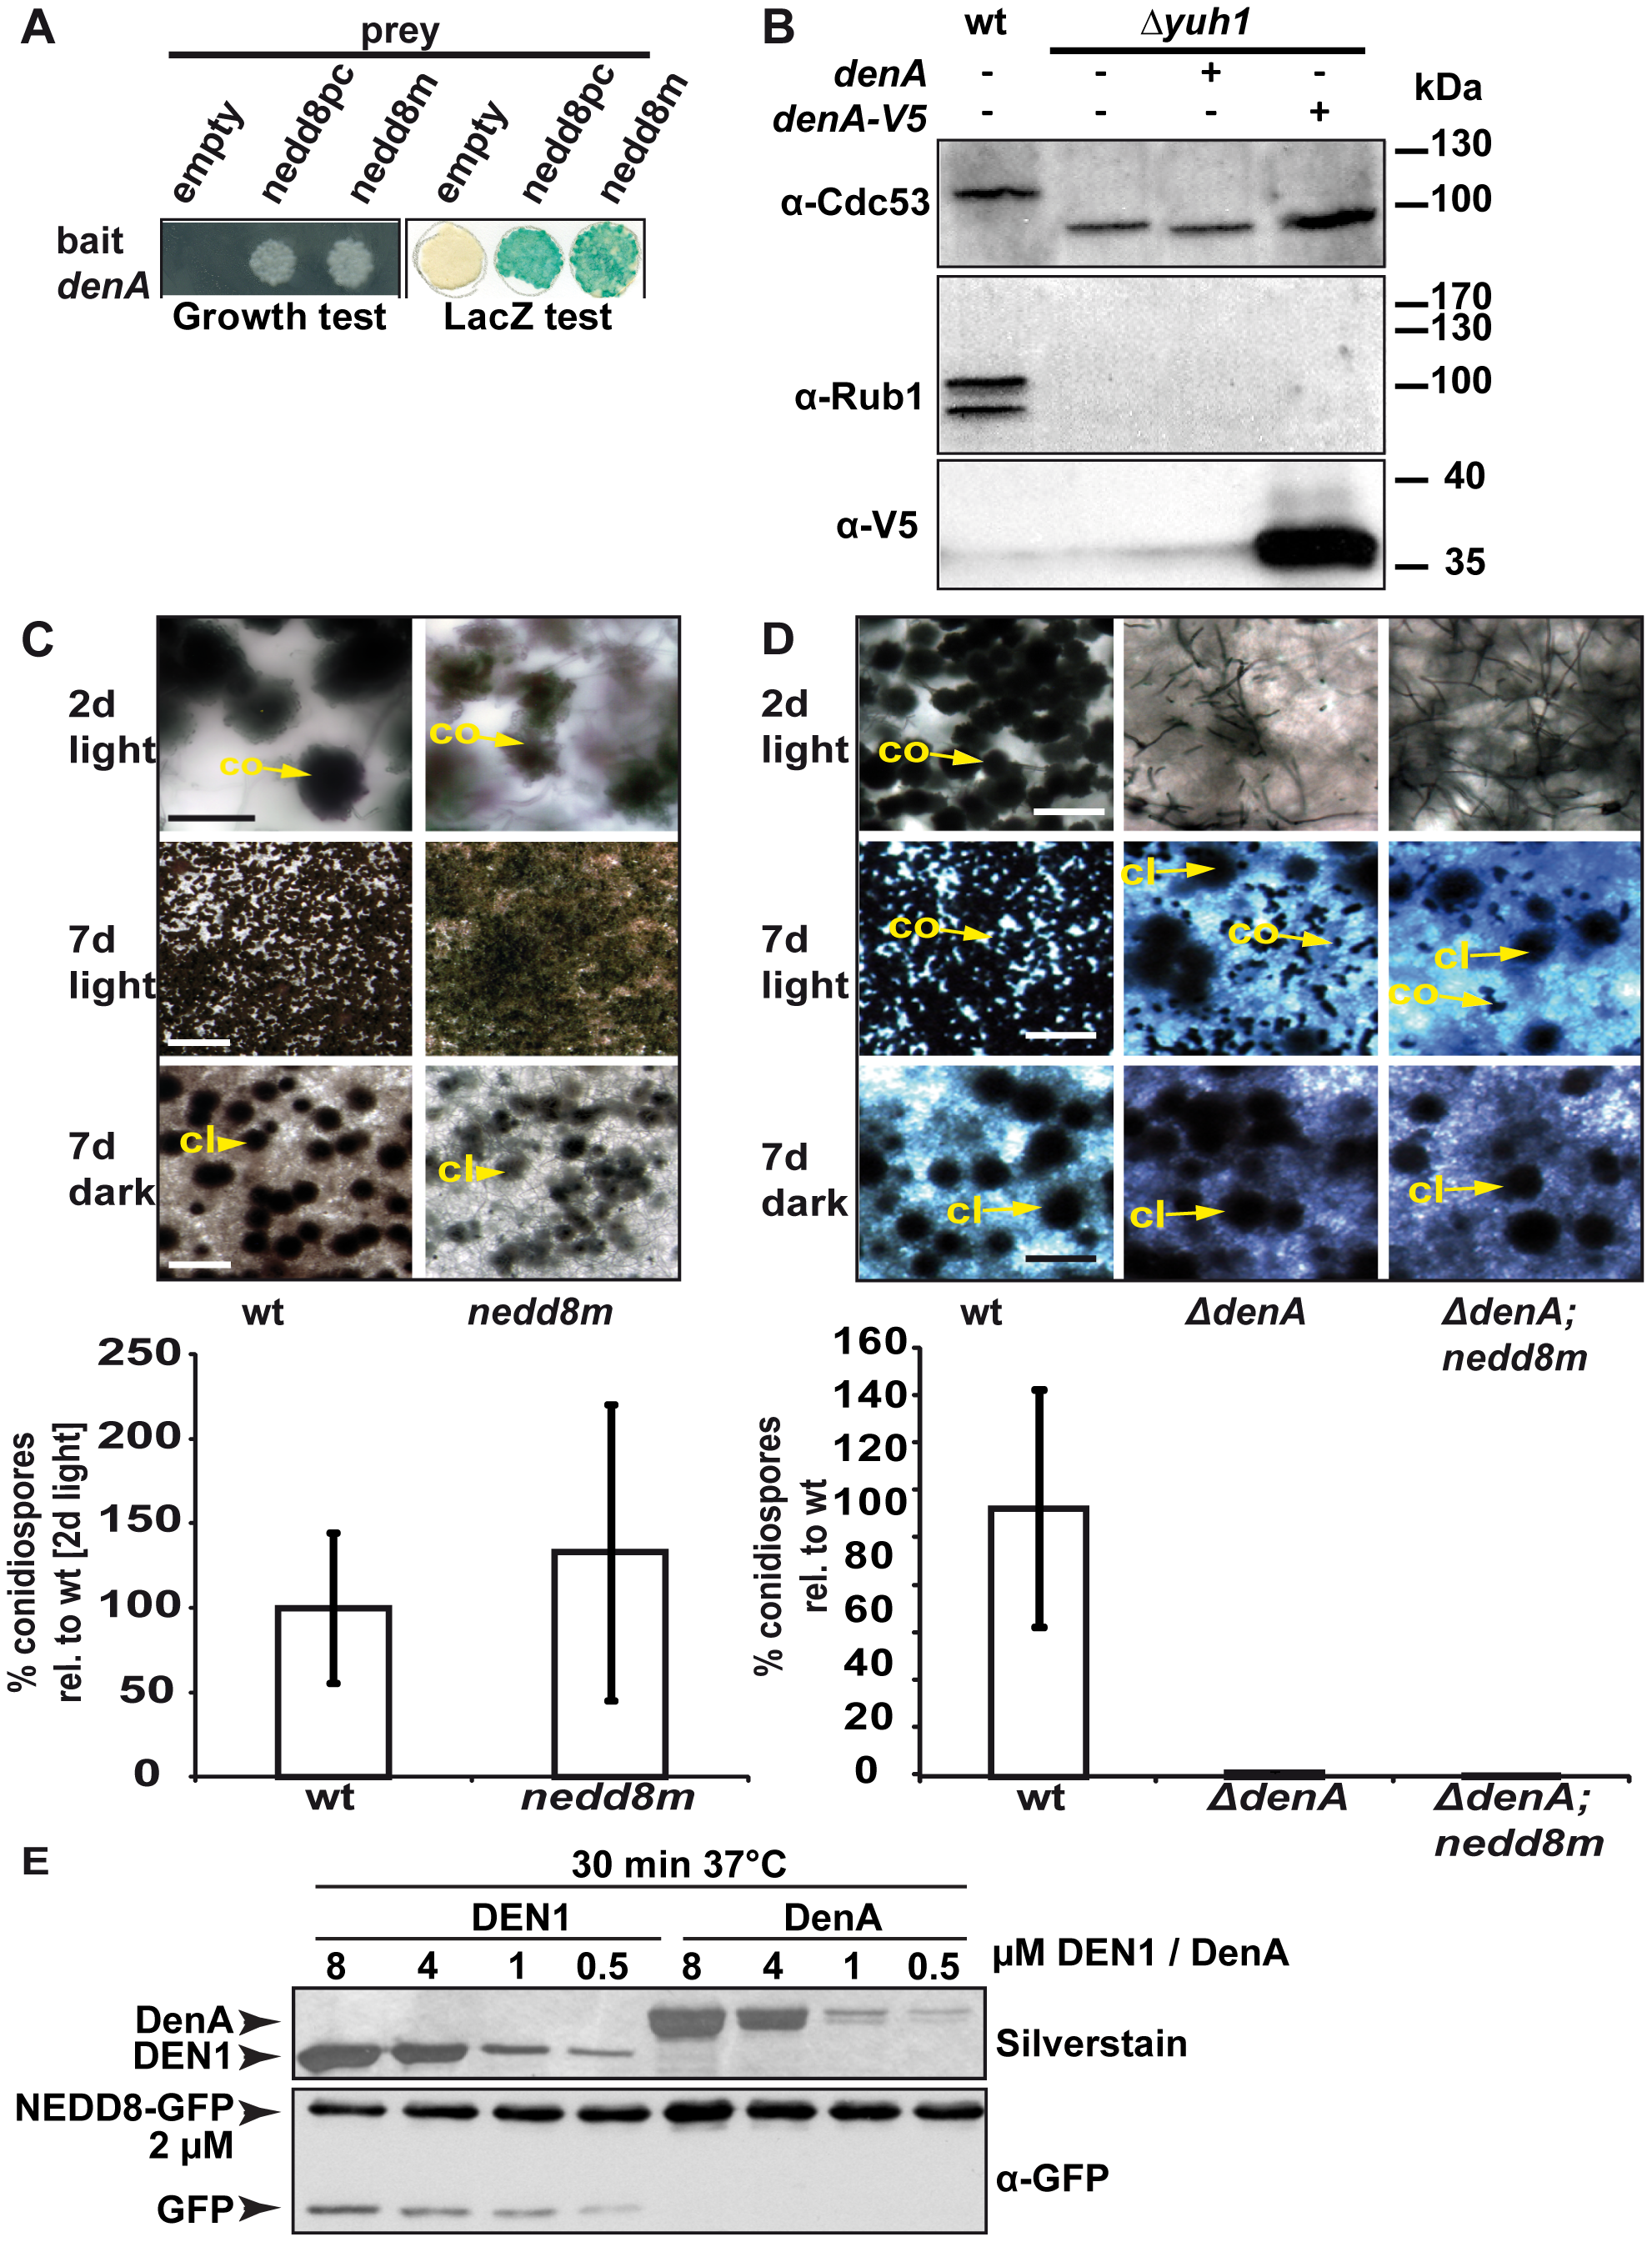 Fungal DenA developmental functions are independent of Nedd8 processing activity.